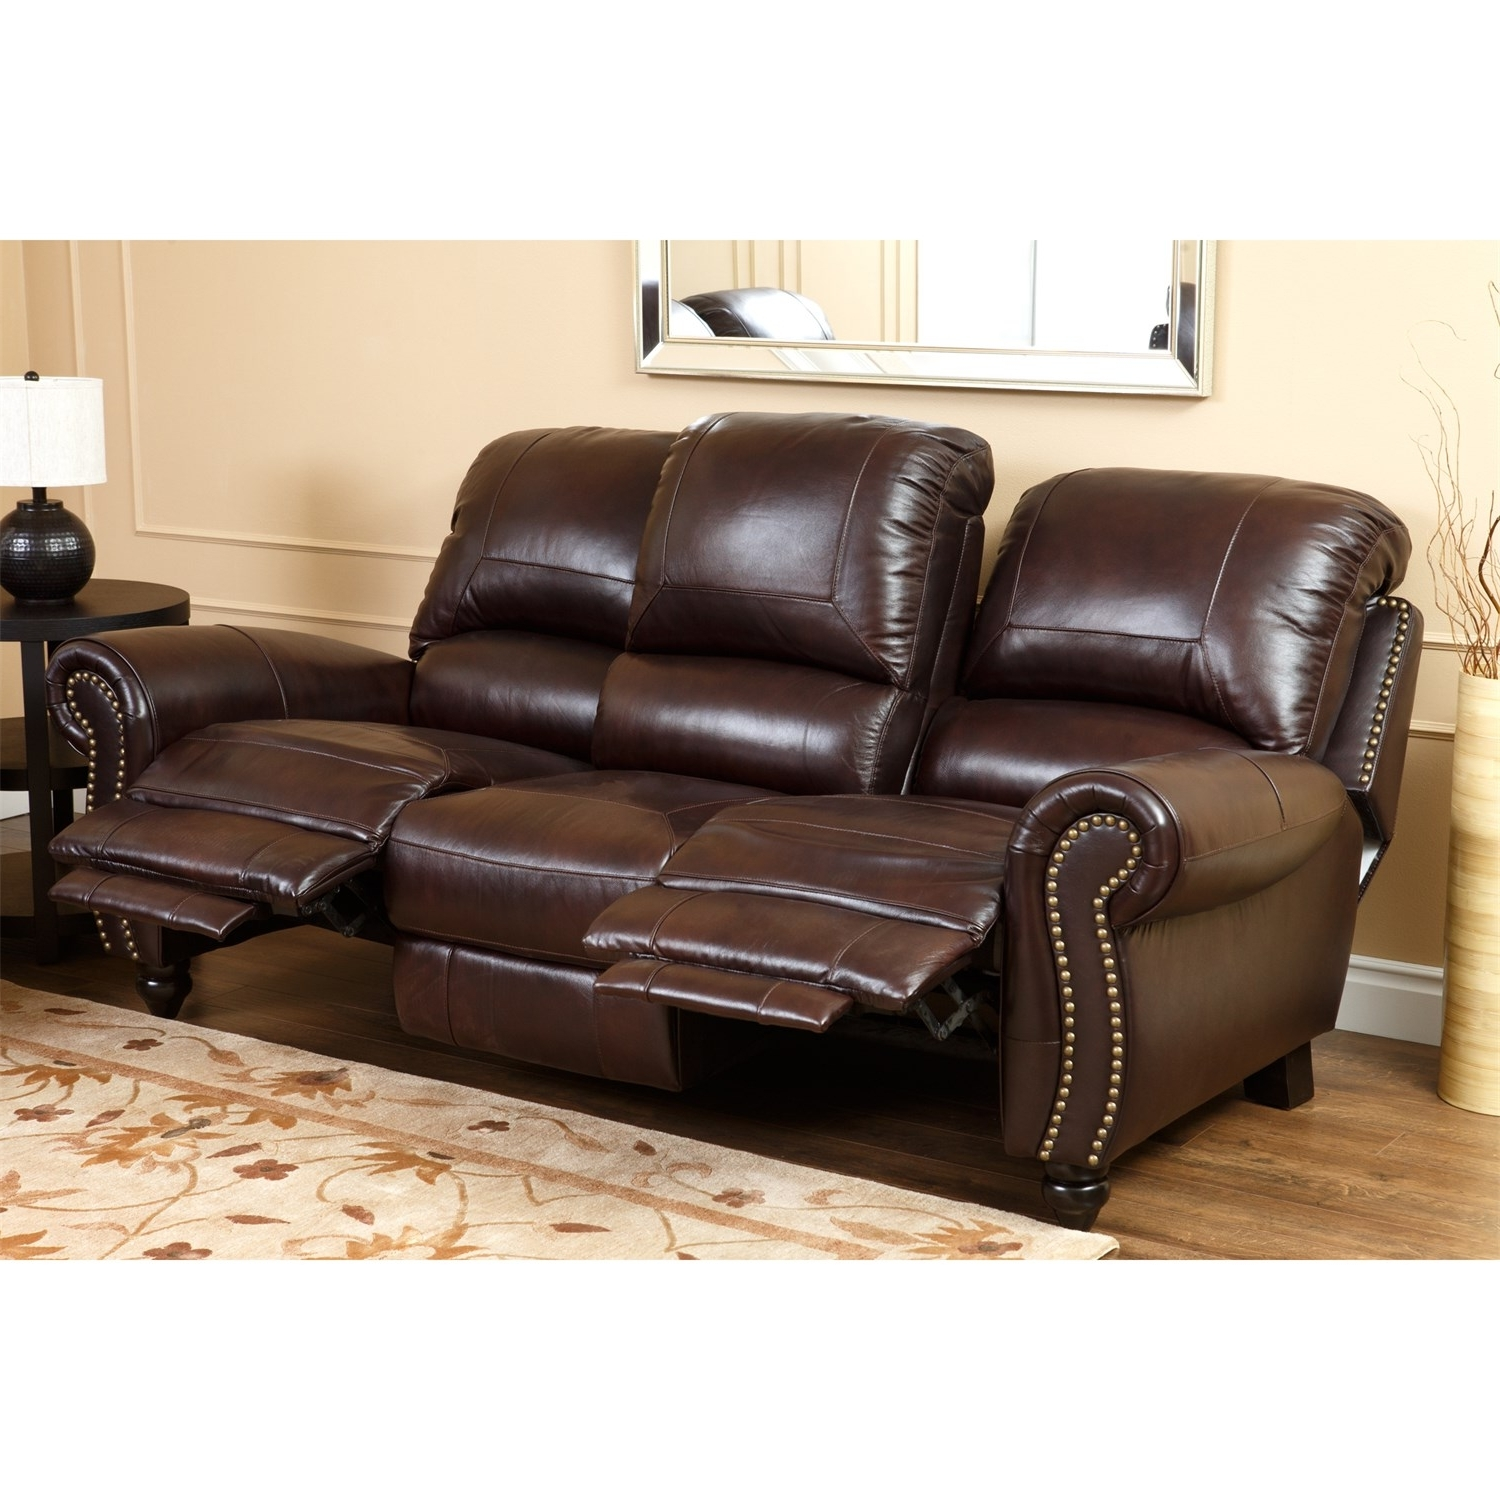 Well Known Canterbury Leather Sofas With Regard To Abbyson Living Ch 8857 Brg 3/1 Canterbury Leather Pushback (View 4 of 20)